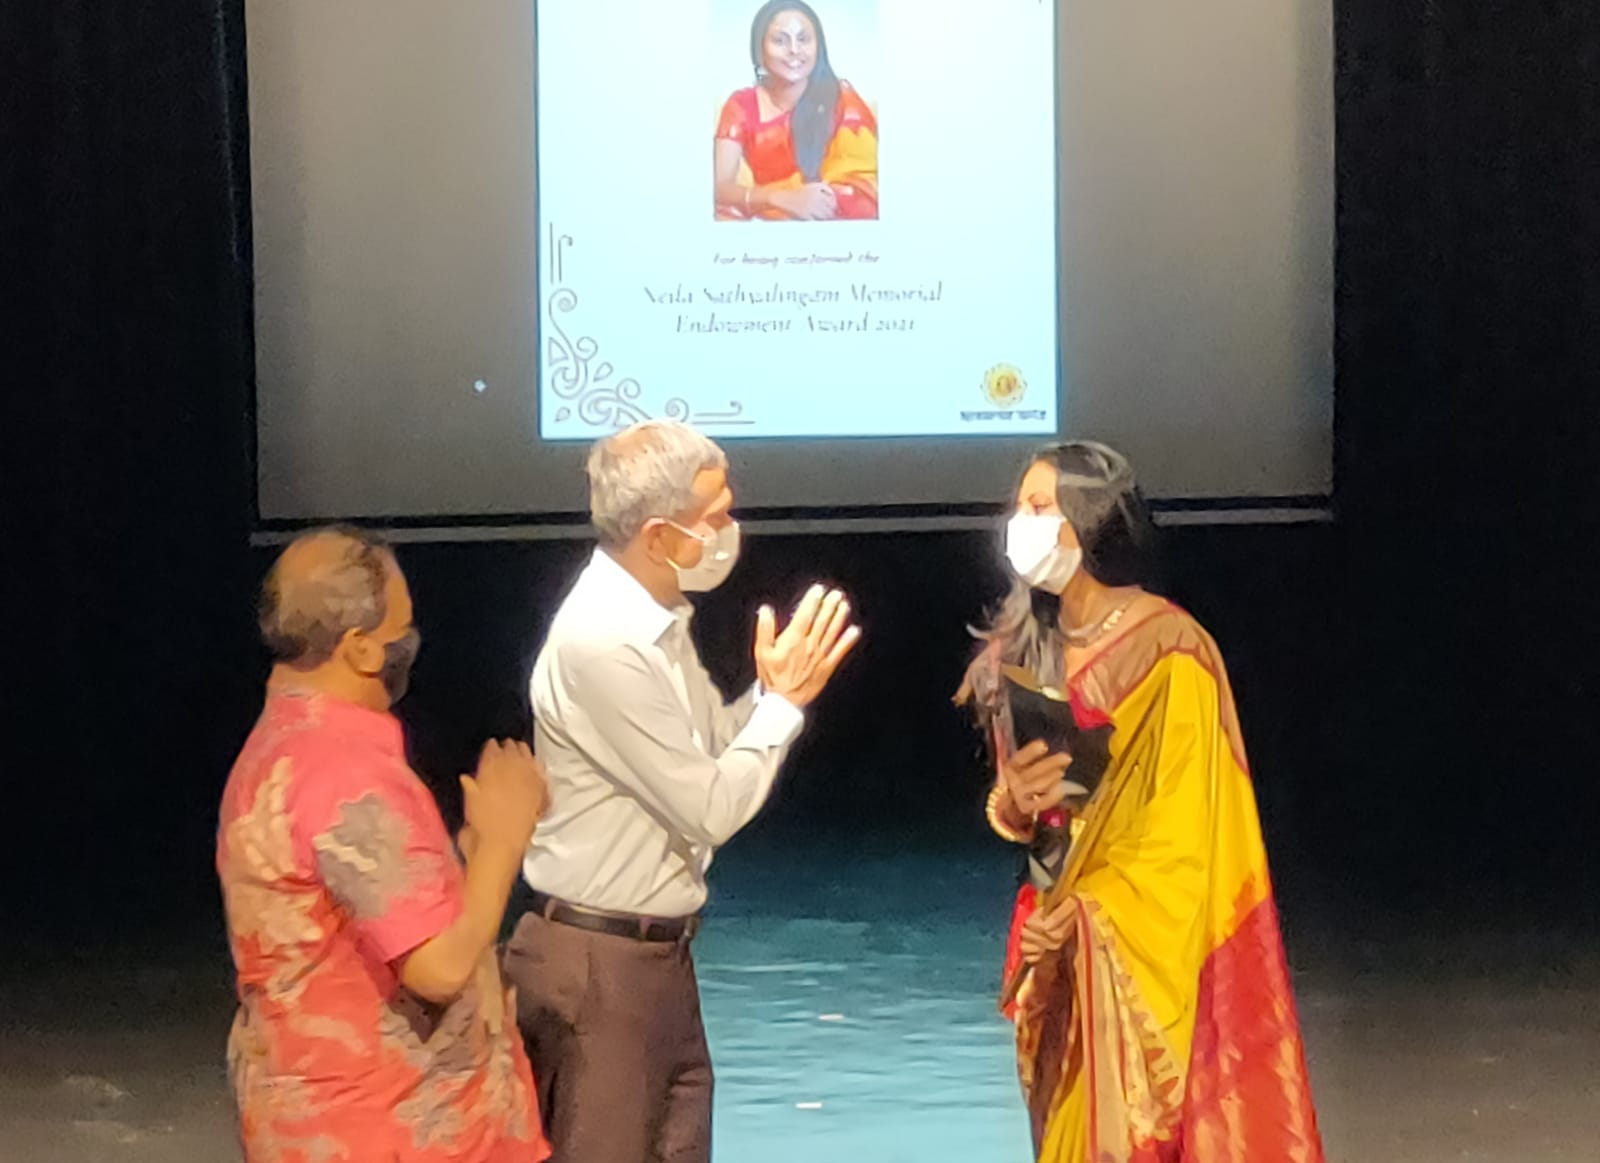 This year, Apsaras Arts presented the Neila Sathyalingam Memorial Endowment Award to dancer Meera Balasubramanian. Photo : Connected to India